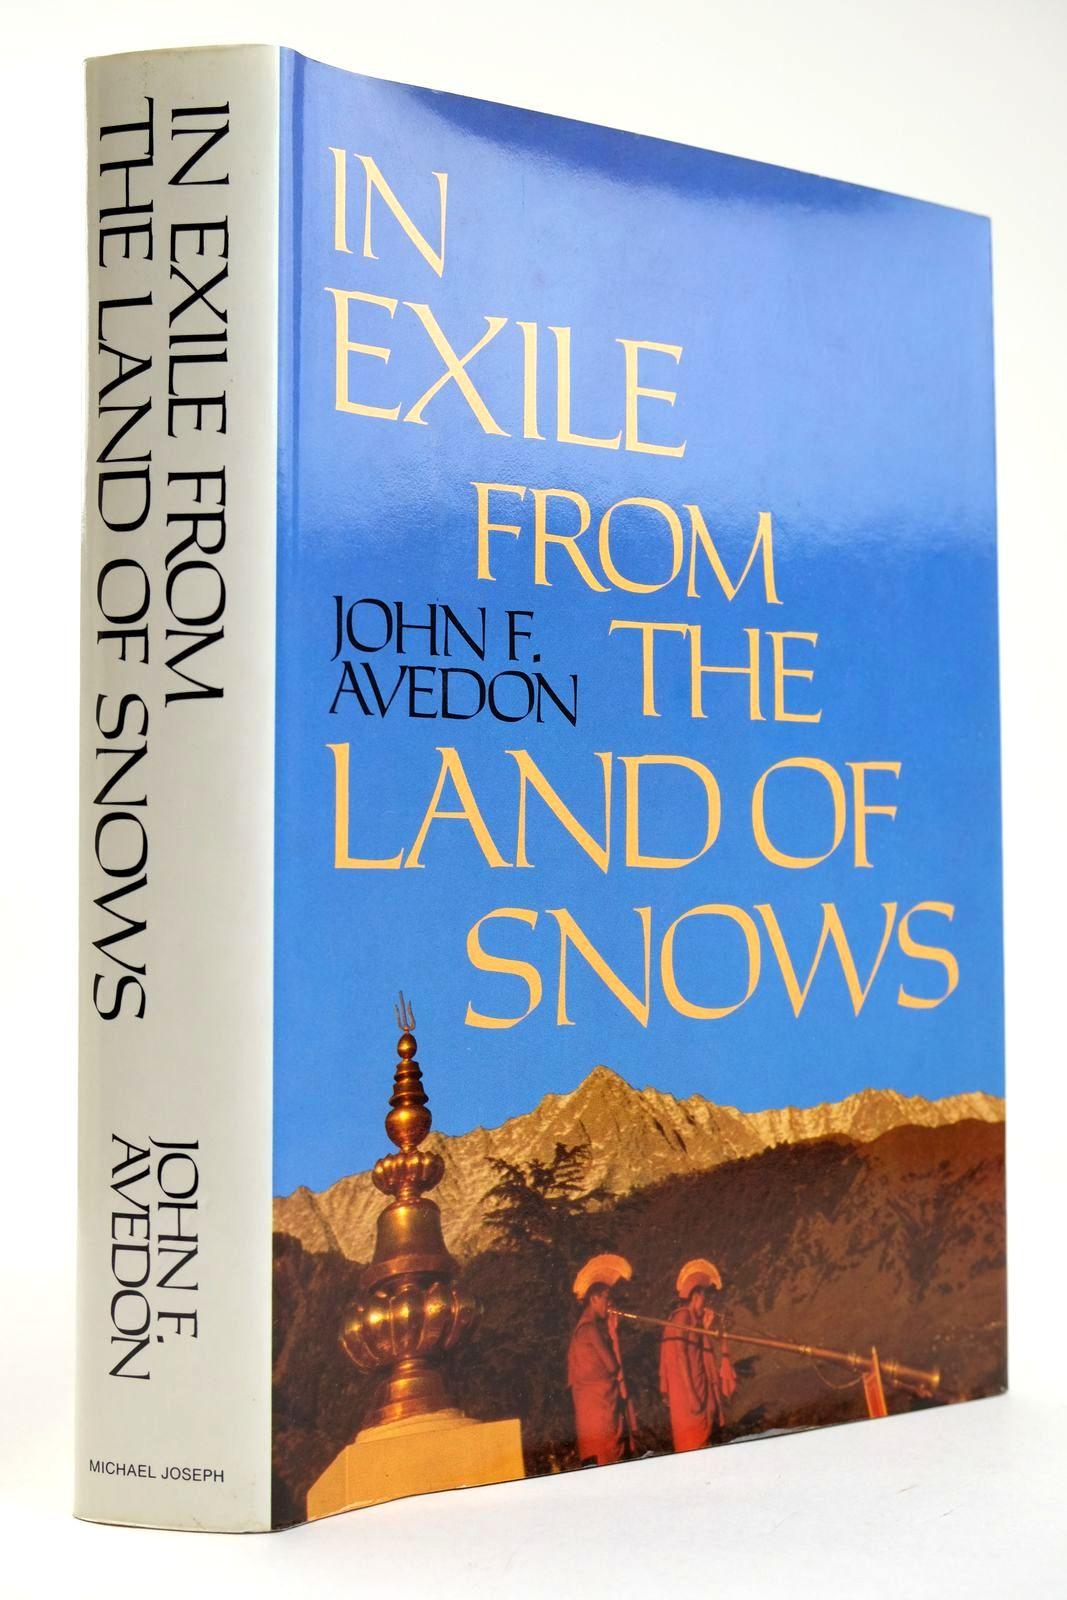 Photo of IN EXILE FROM THE LAND OF SNOWS written by Avedon, John F. published by Michael Joseph (STOCK CODE: 2132473)  for sale by Stella & Rose's Books